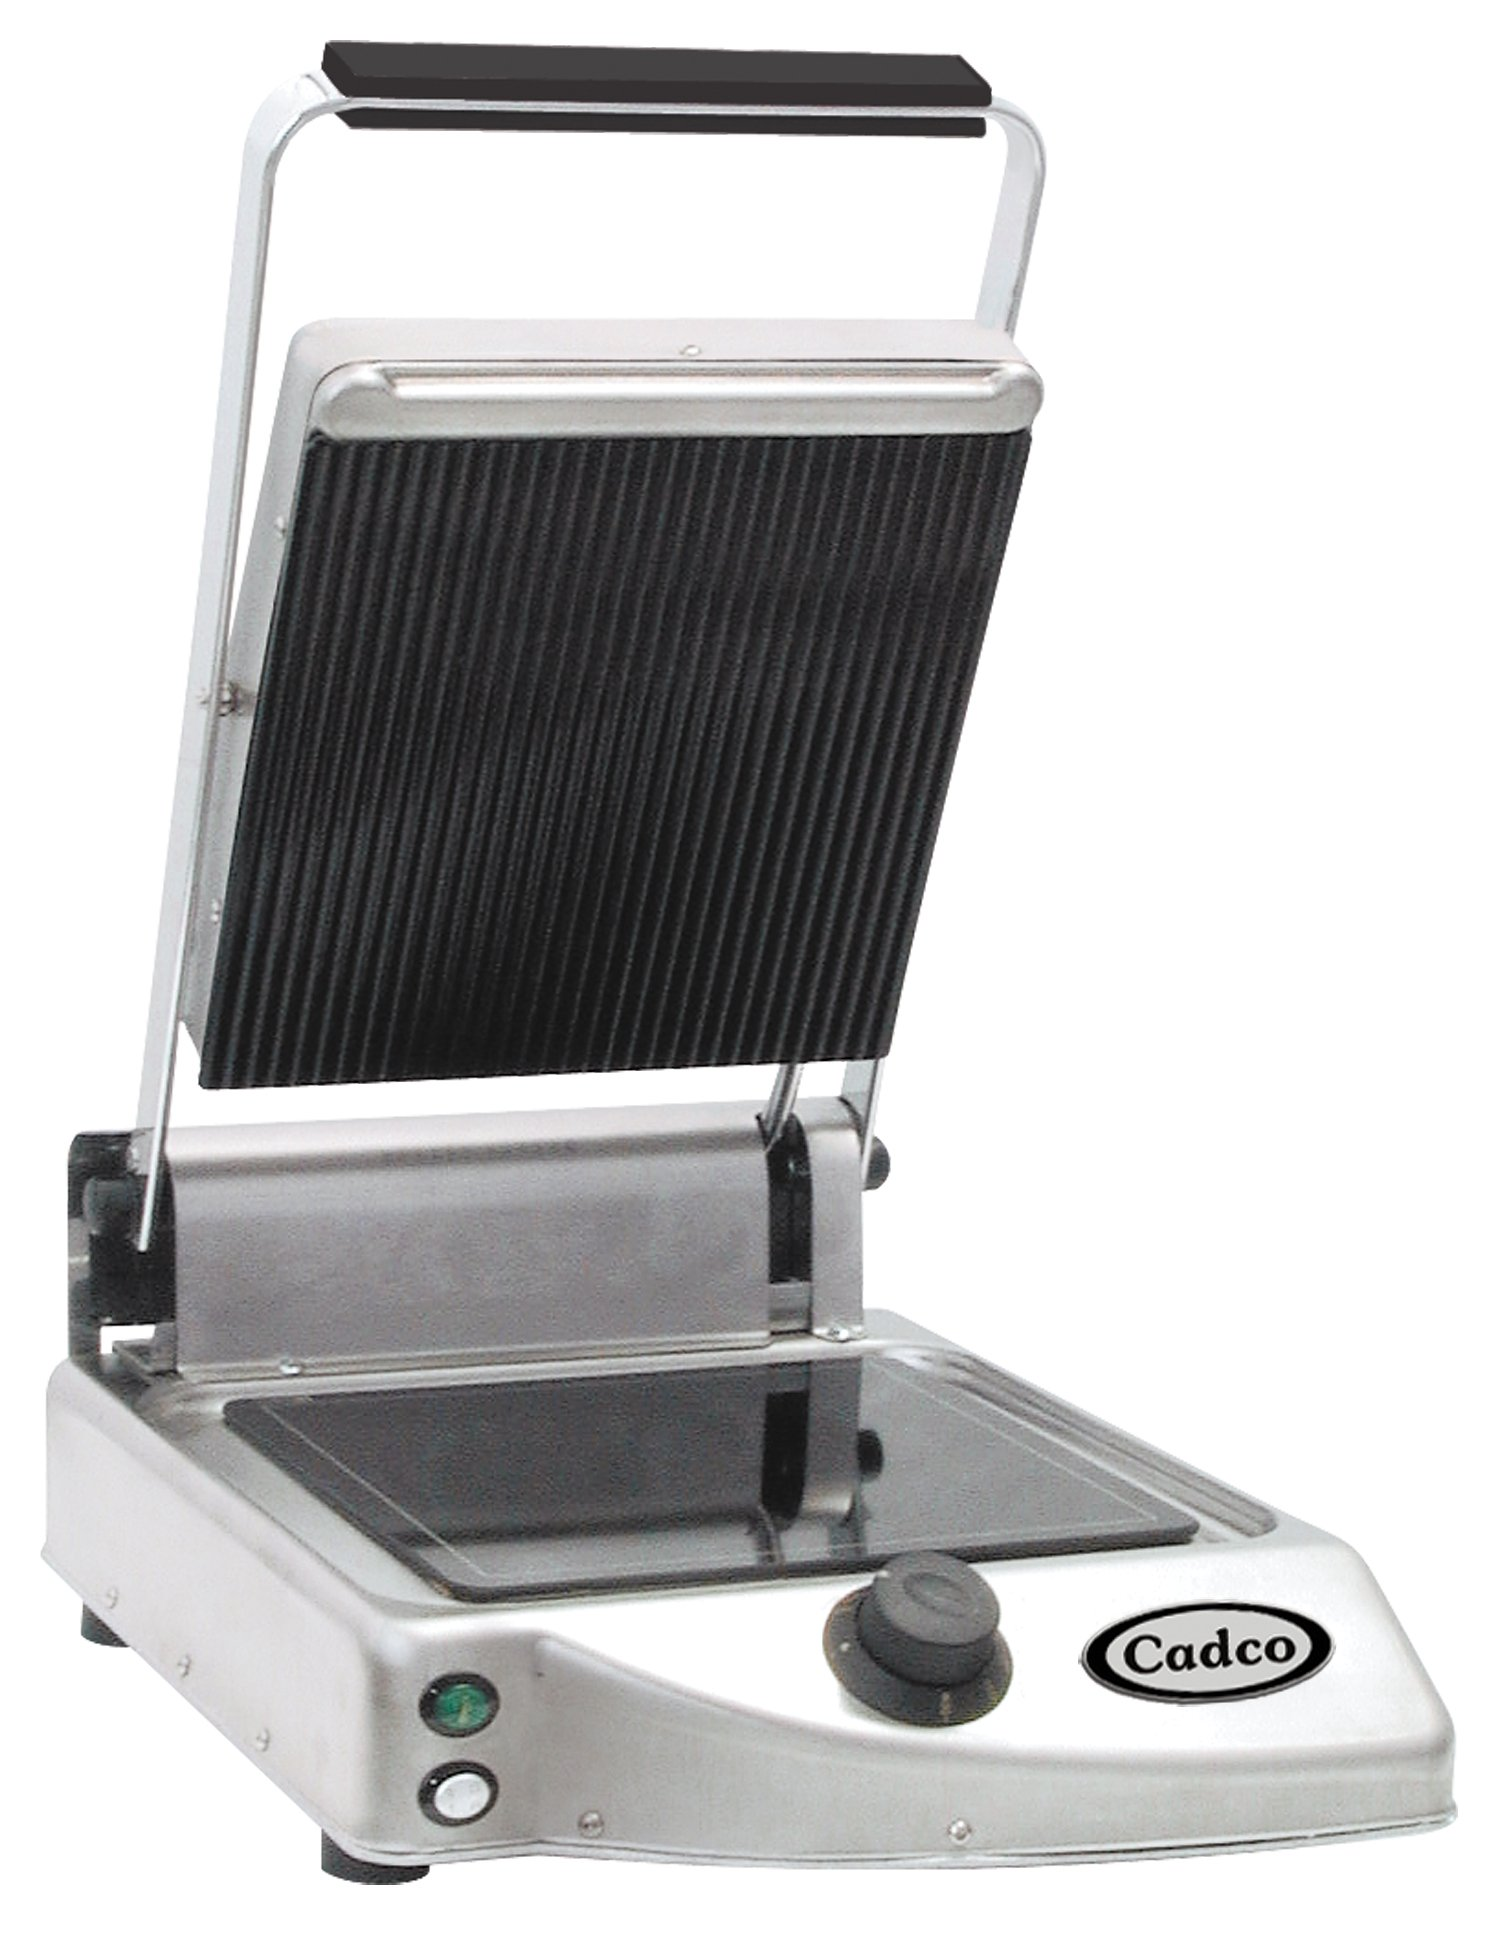 Cadco Single Panini/Clamshell 120-Volt Grill